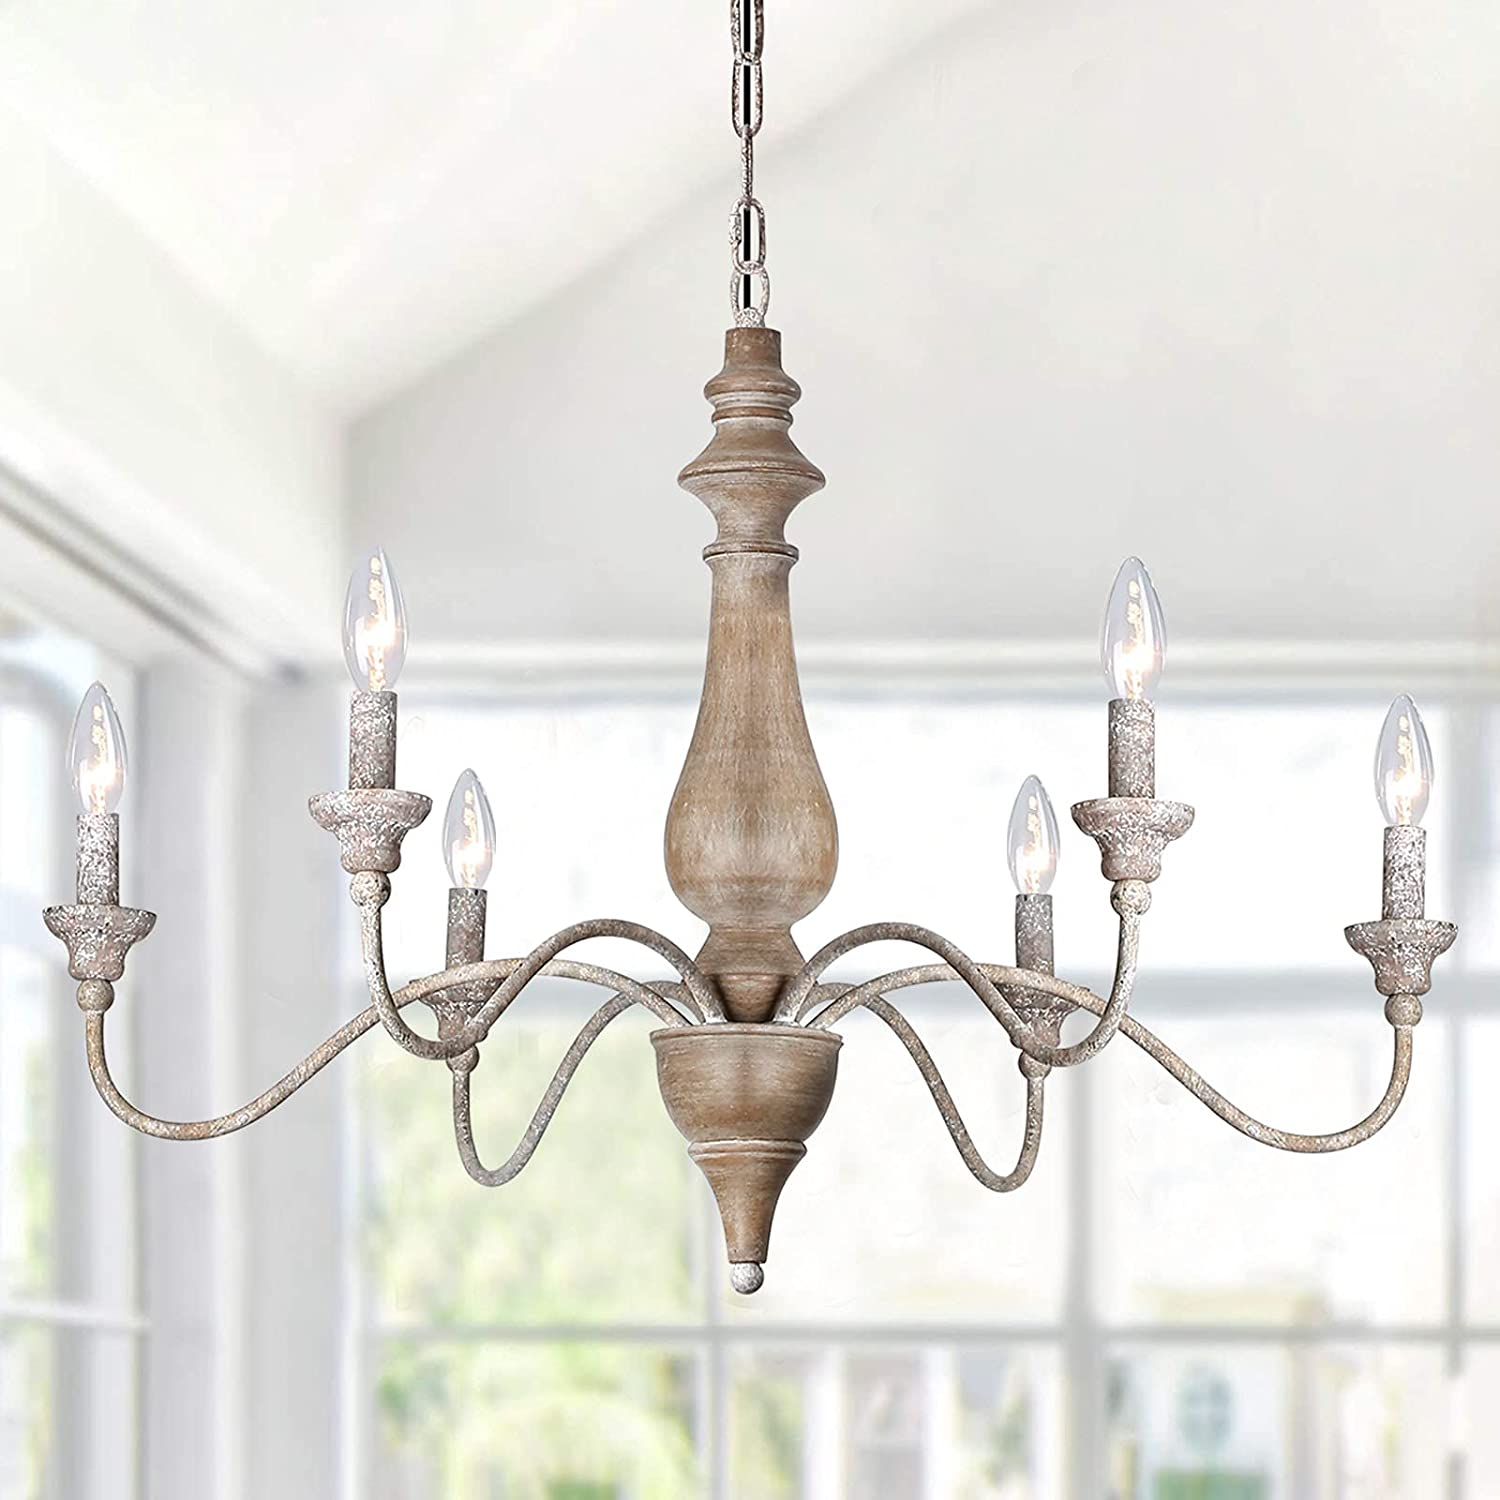 TA 6 Light National uniform free shipping French Country Arms Rust Wood Chandelier Luxury goods Imitation